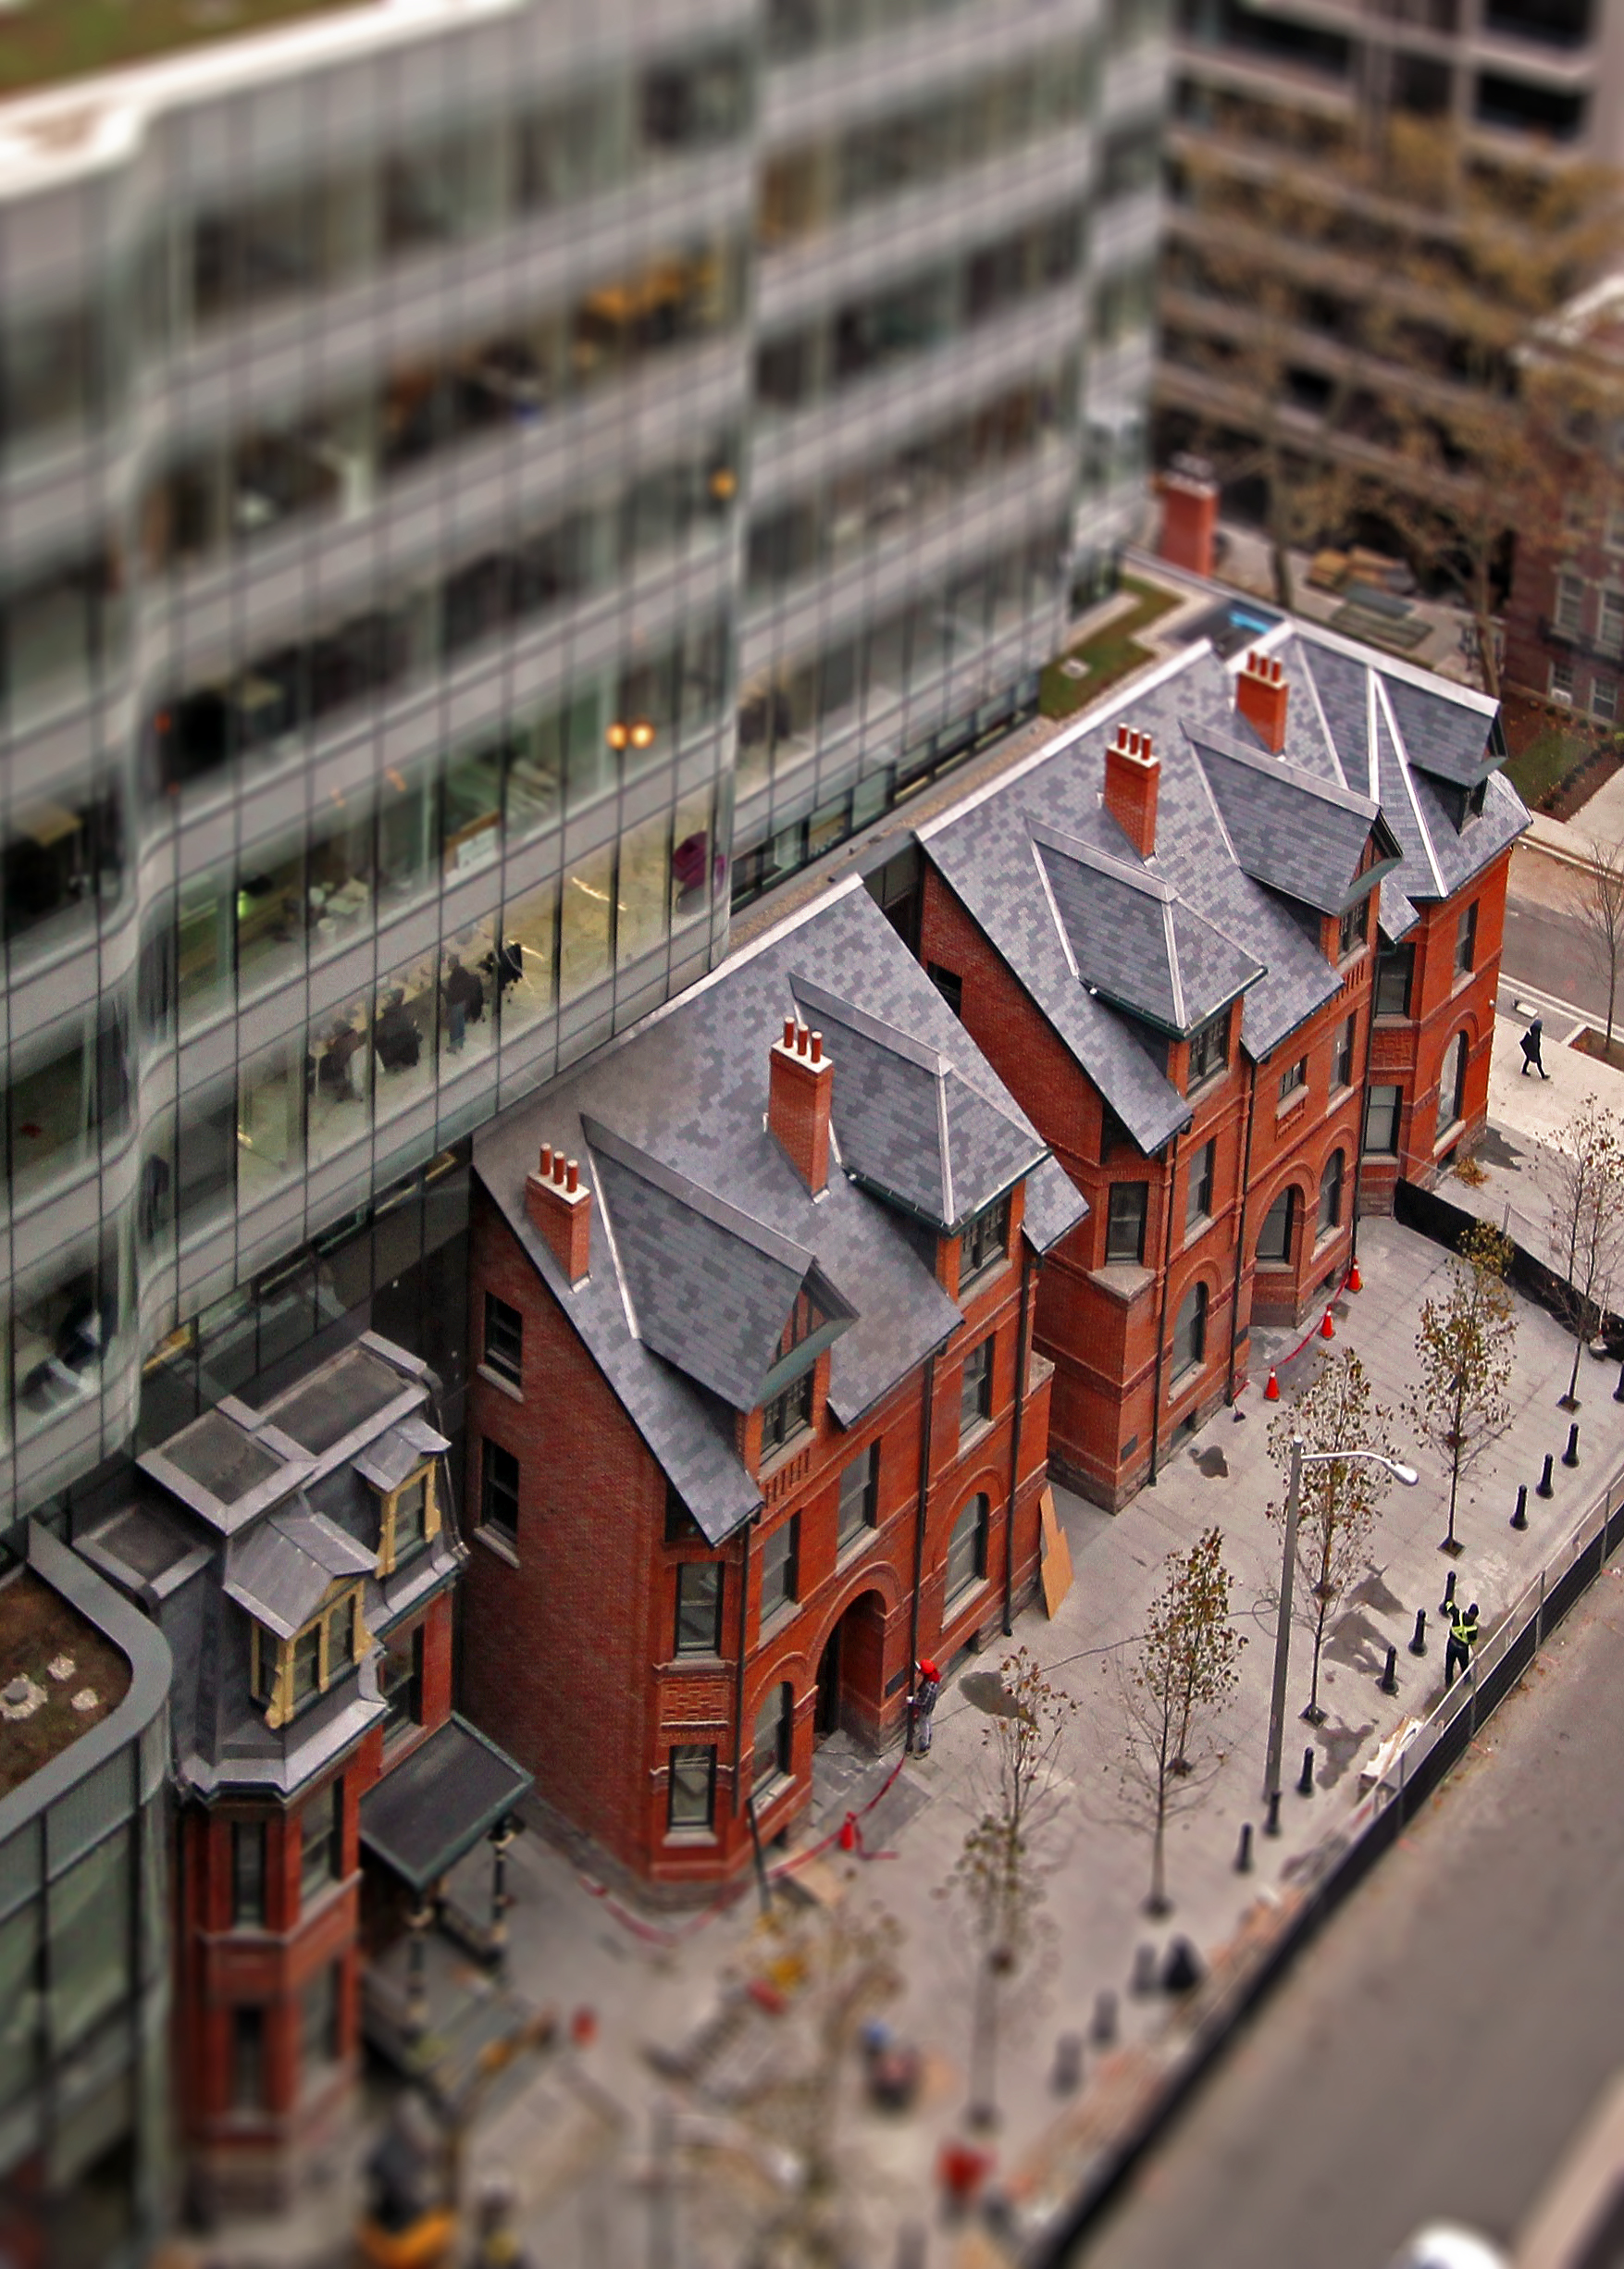 The Sultan Street Development Features The Integration Of A Row Of Red  Brick Romanesque Houses With A New Office Tower Development Designed By  Hariri ...